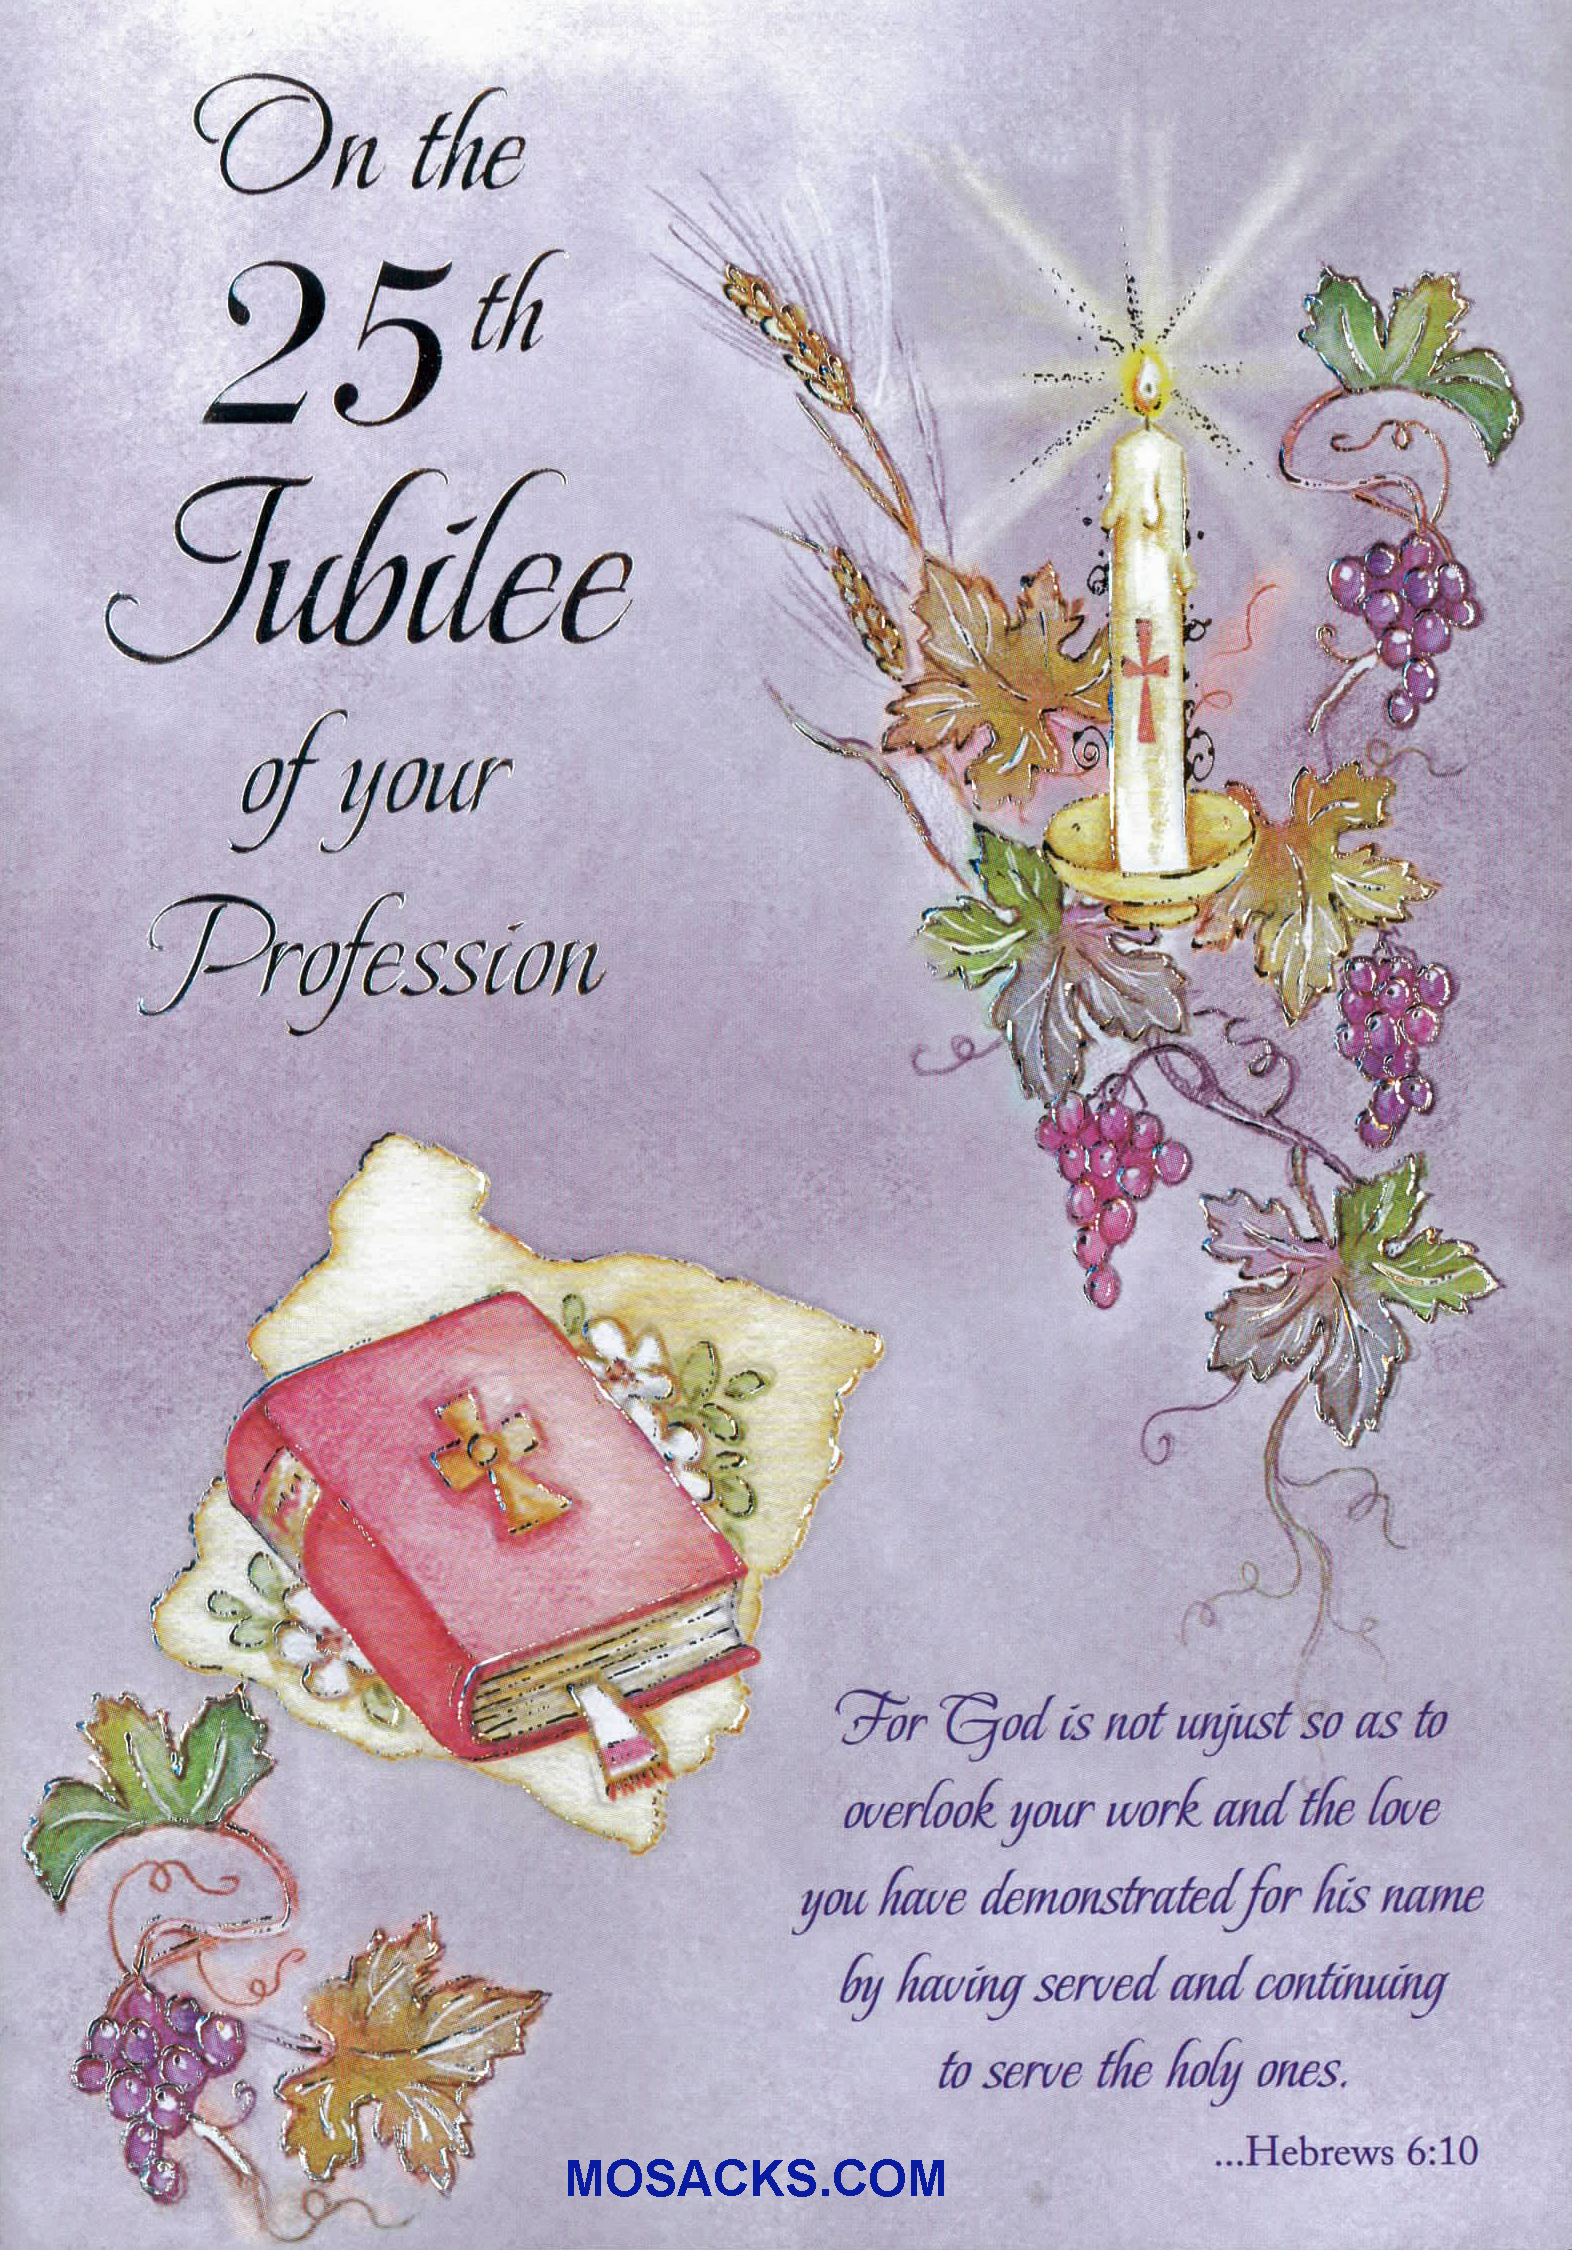 On The 25th Jubilee Of Your Profession Greeting Card -JUBS87447